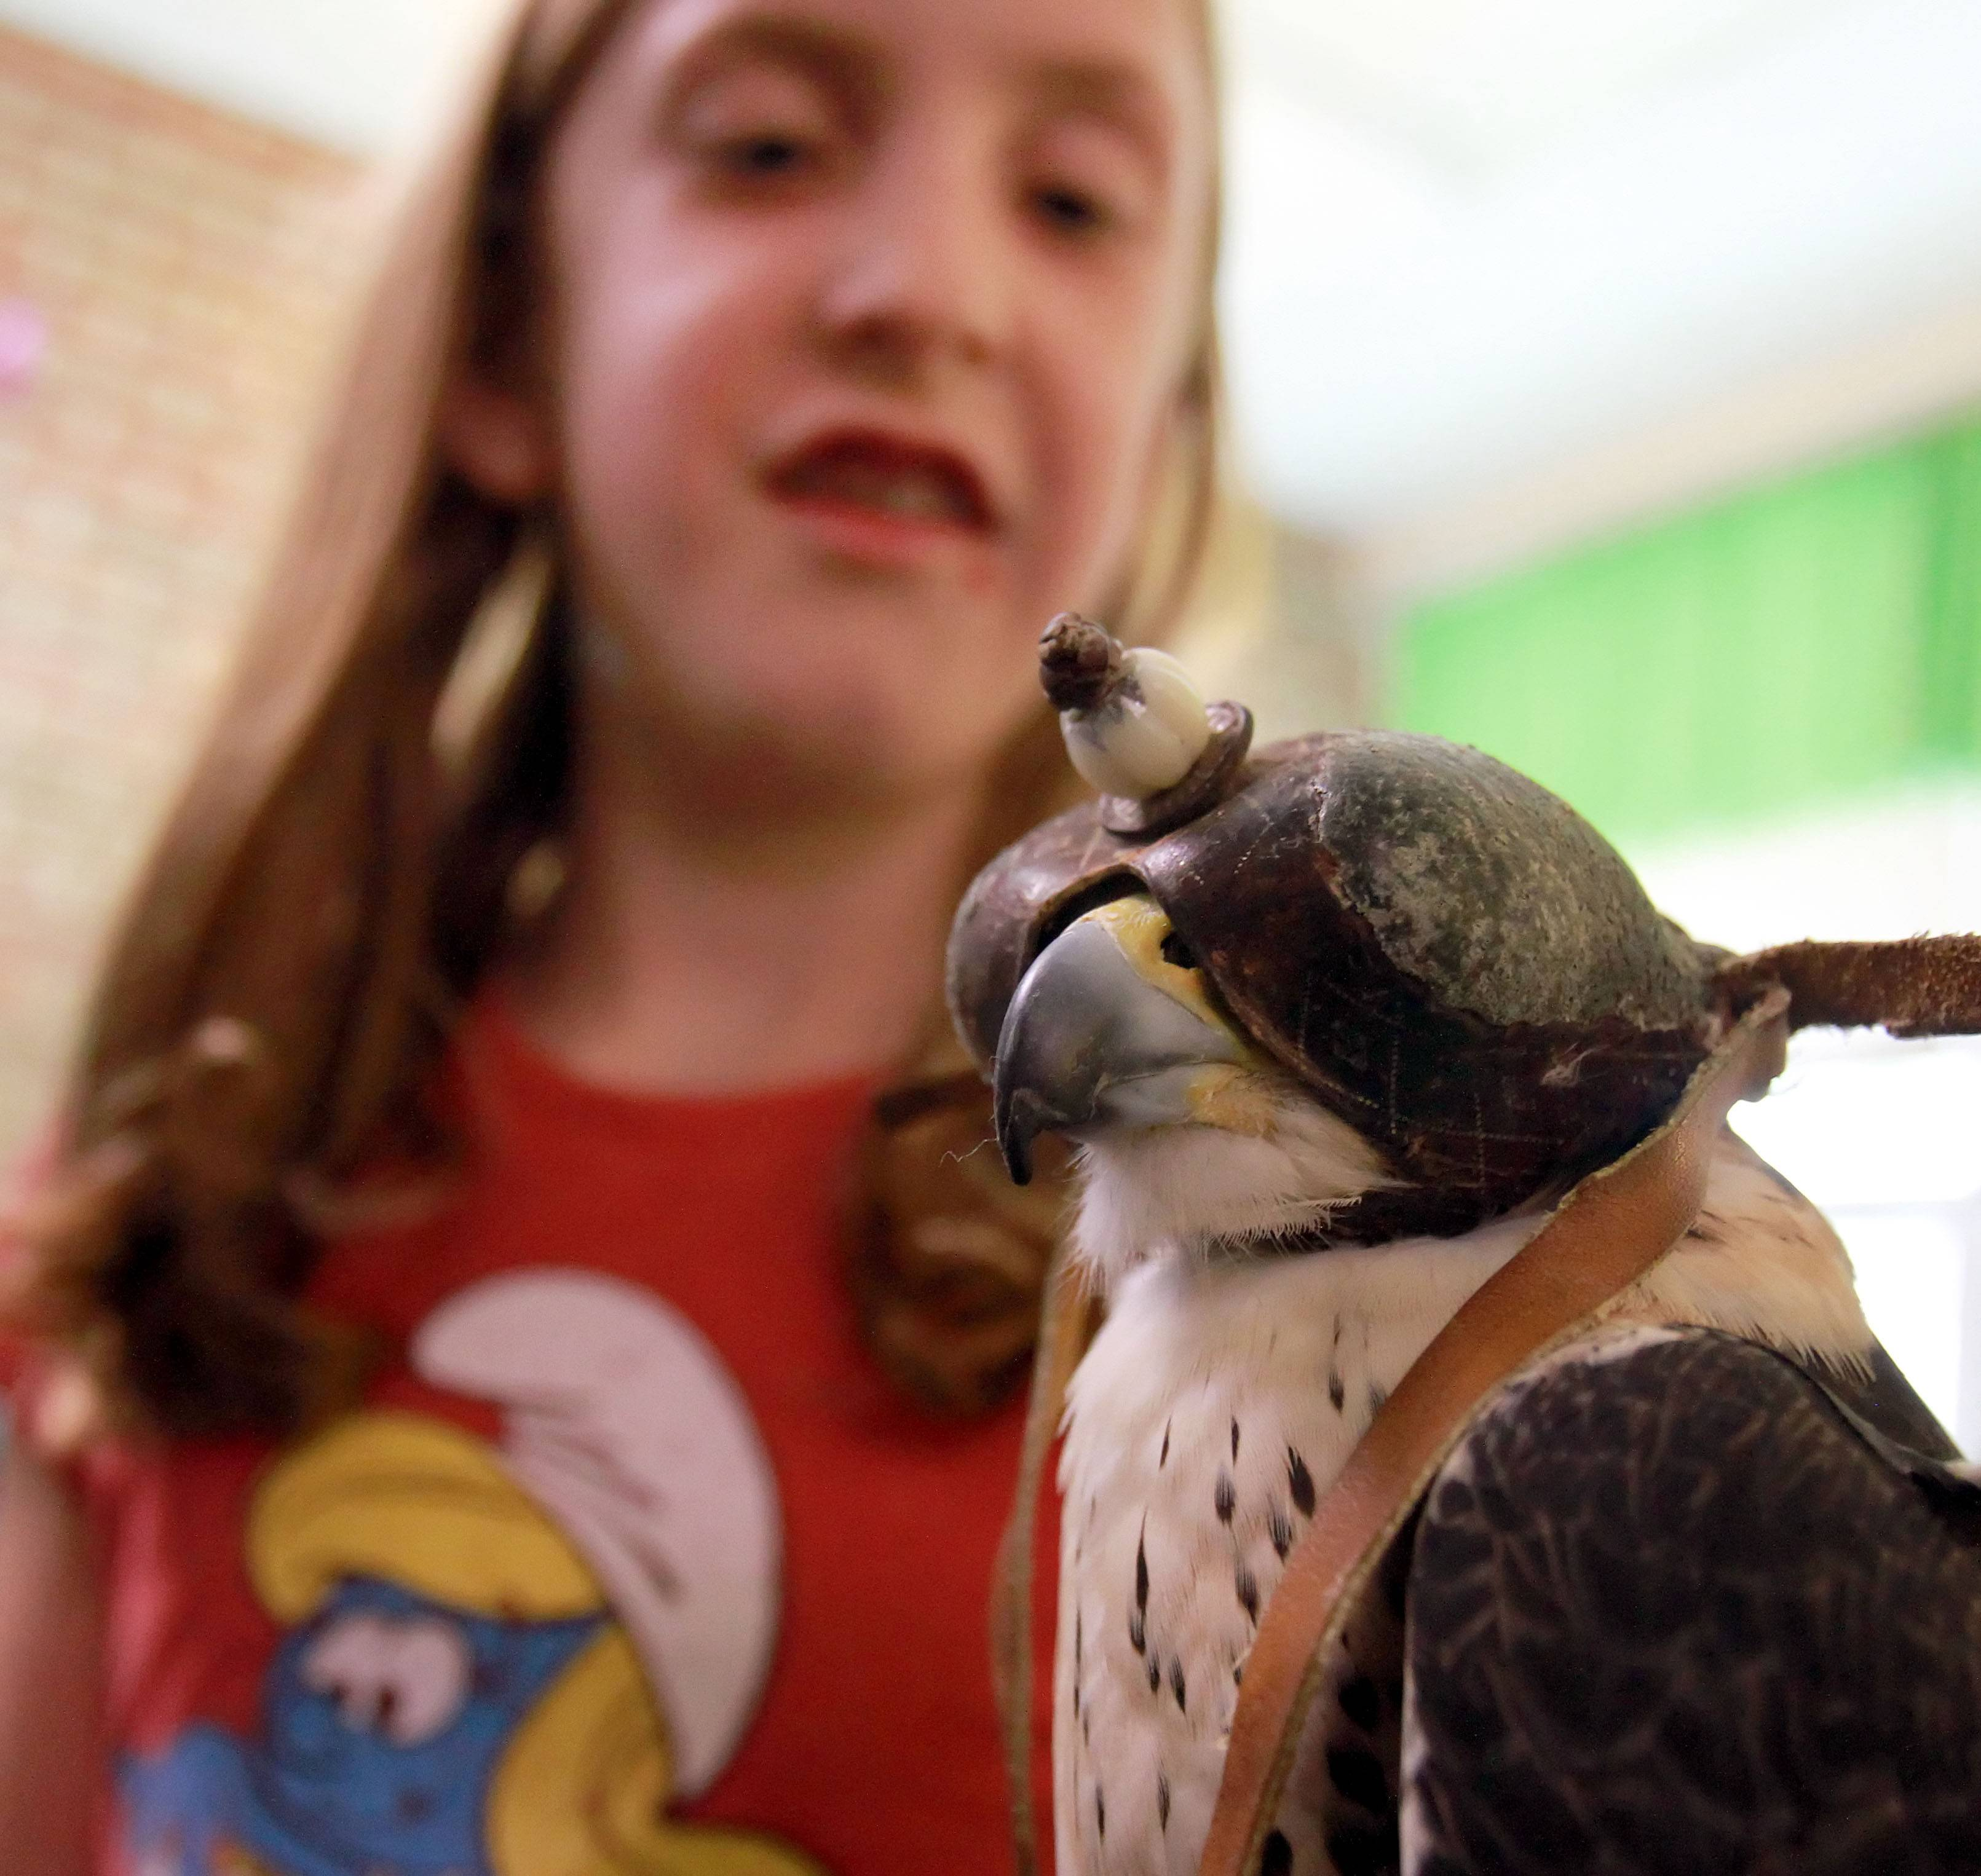 Rockland School third-grader Emily Coughlin holds Alvin, a peregrine falcon, during Friday's visit from Craig Hendee of Old Mill Creek. Hendee is the director of the International Heritage Conservancy.